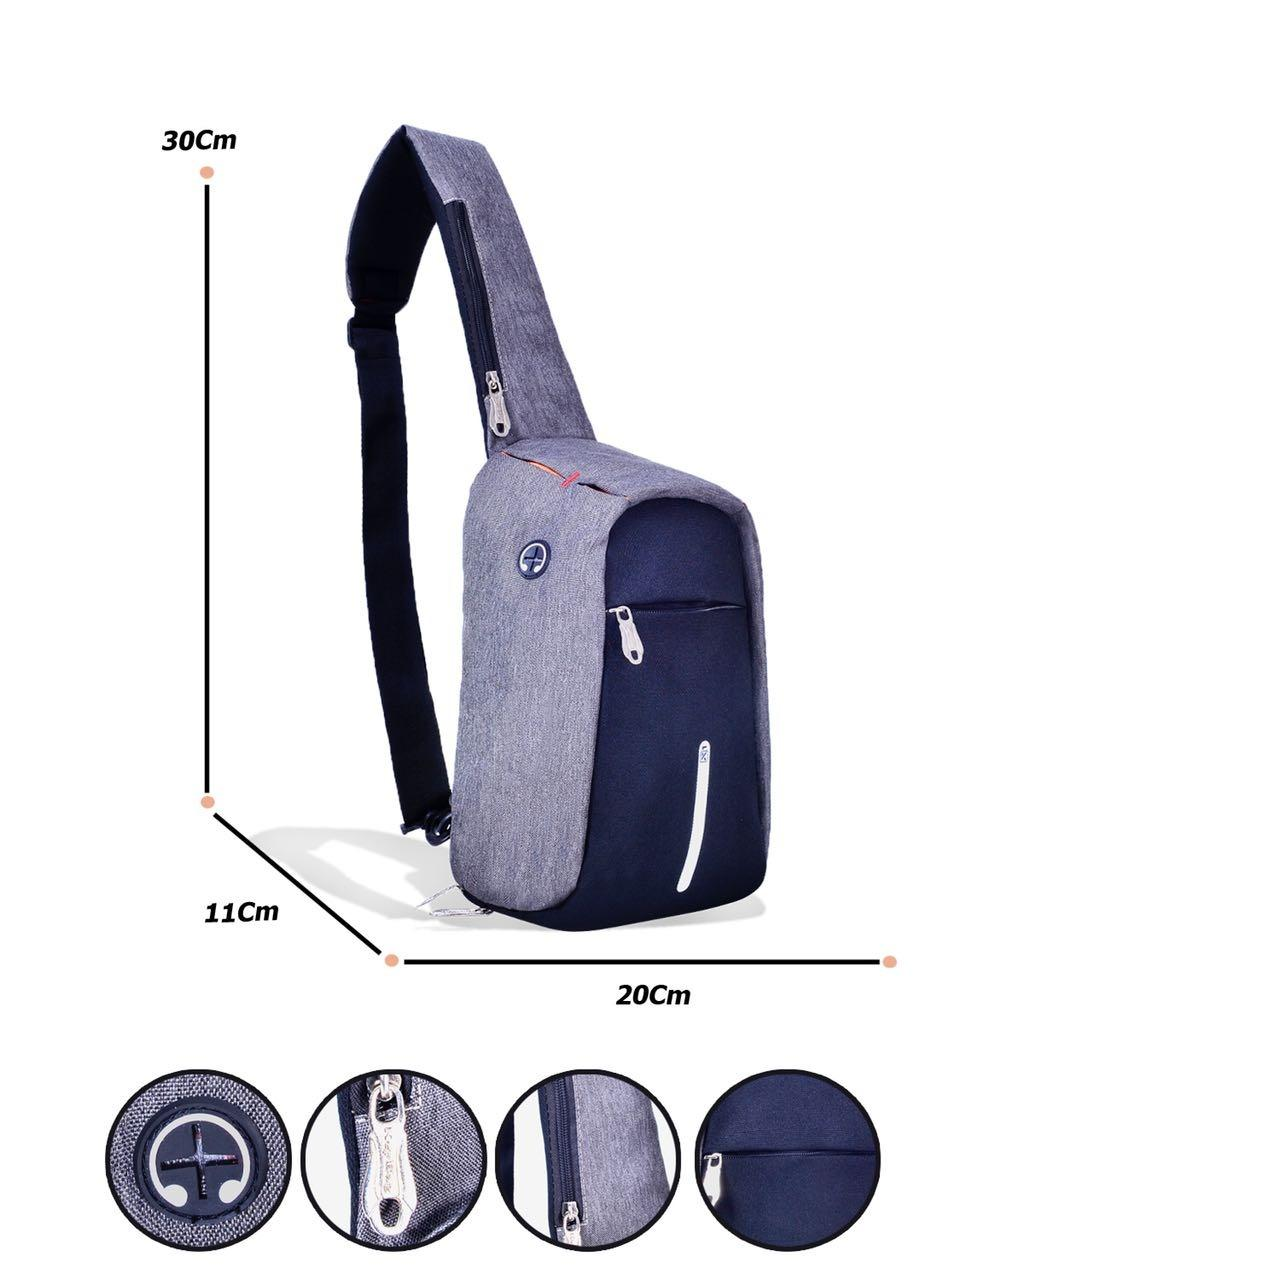 key bag Tas Slempang Pria Anti Maling Chest Bag Crossbody Anti Theft Hole  Hands free1205- af047c3c8e